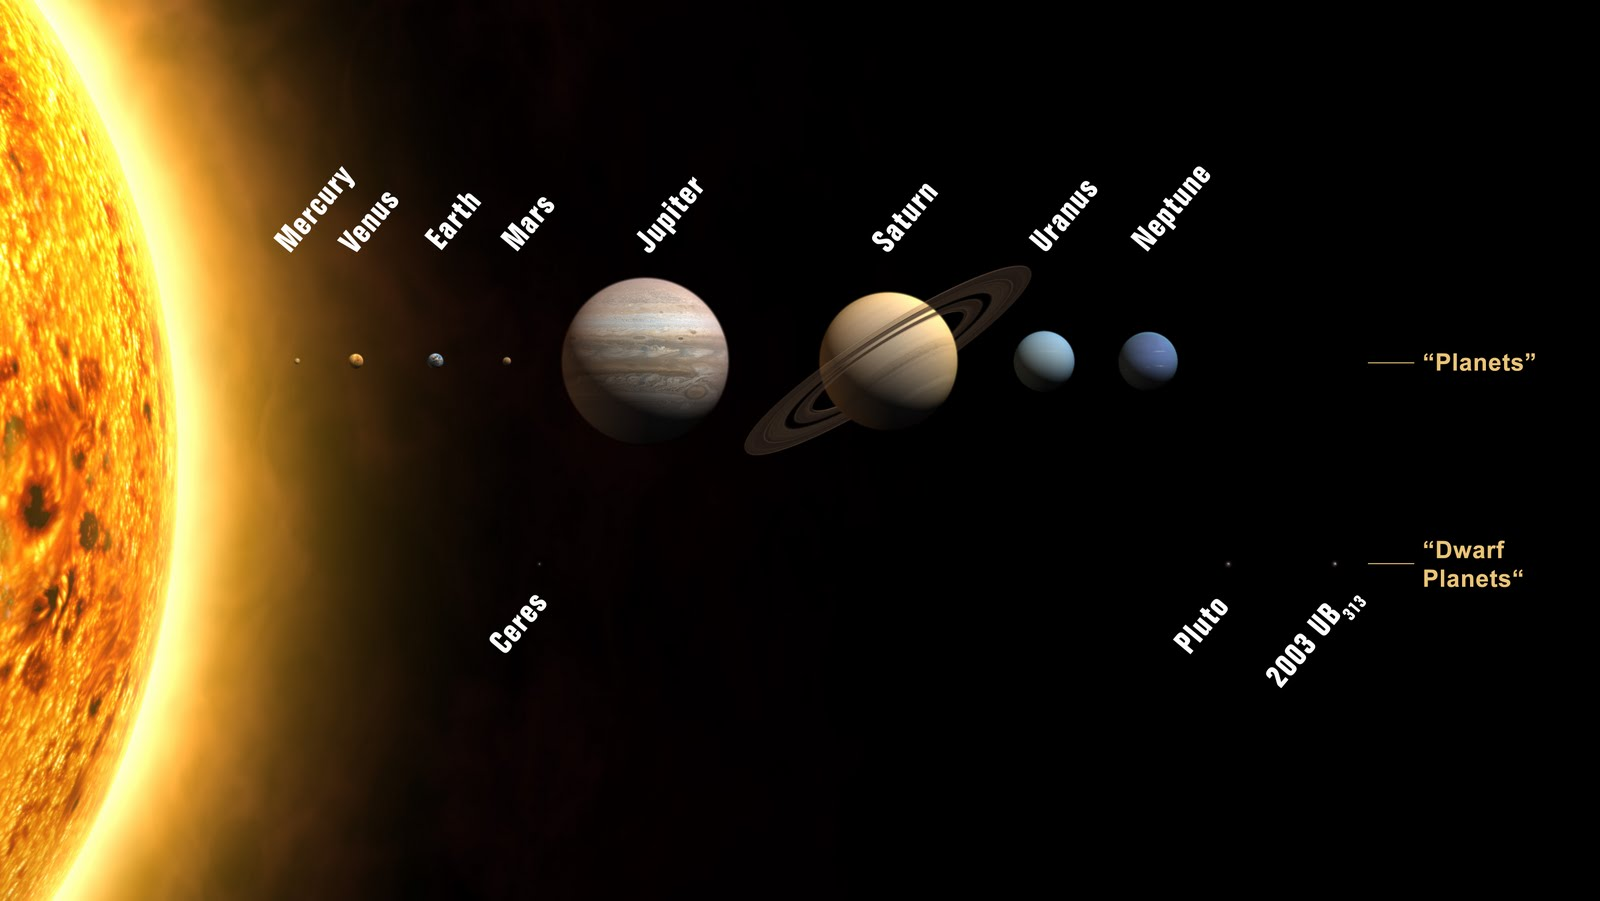 Image of Solar System with Eight Planets